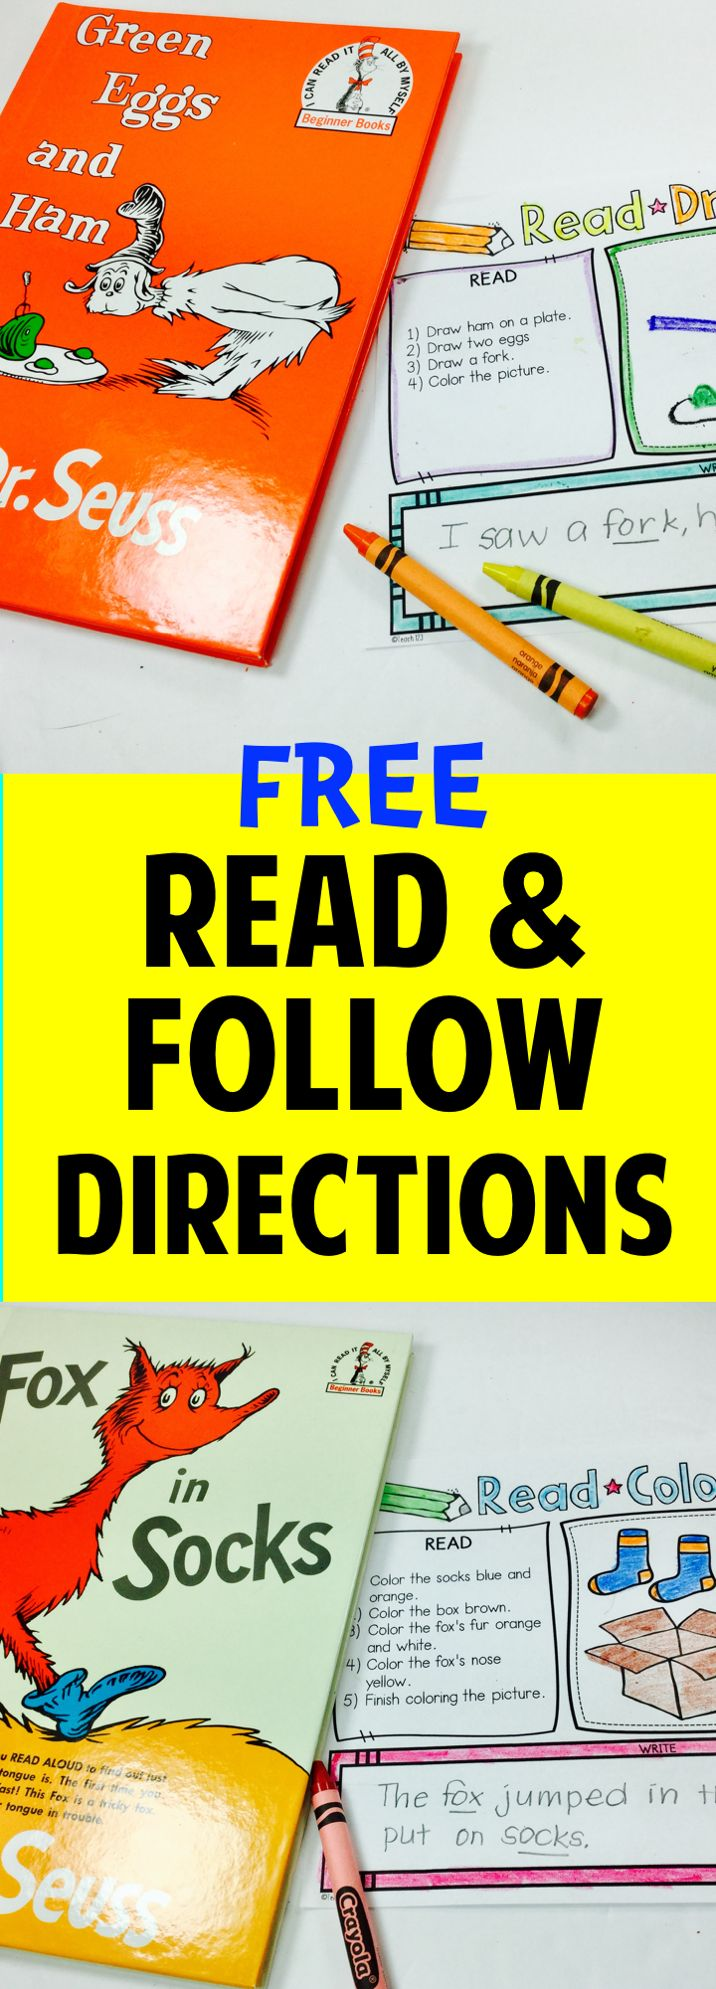 best ideas about following directions following themed follow directions quick prep printables perfect way to enrich